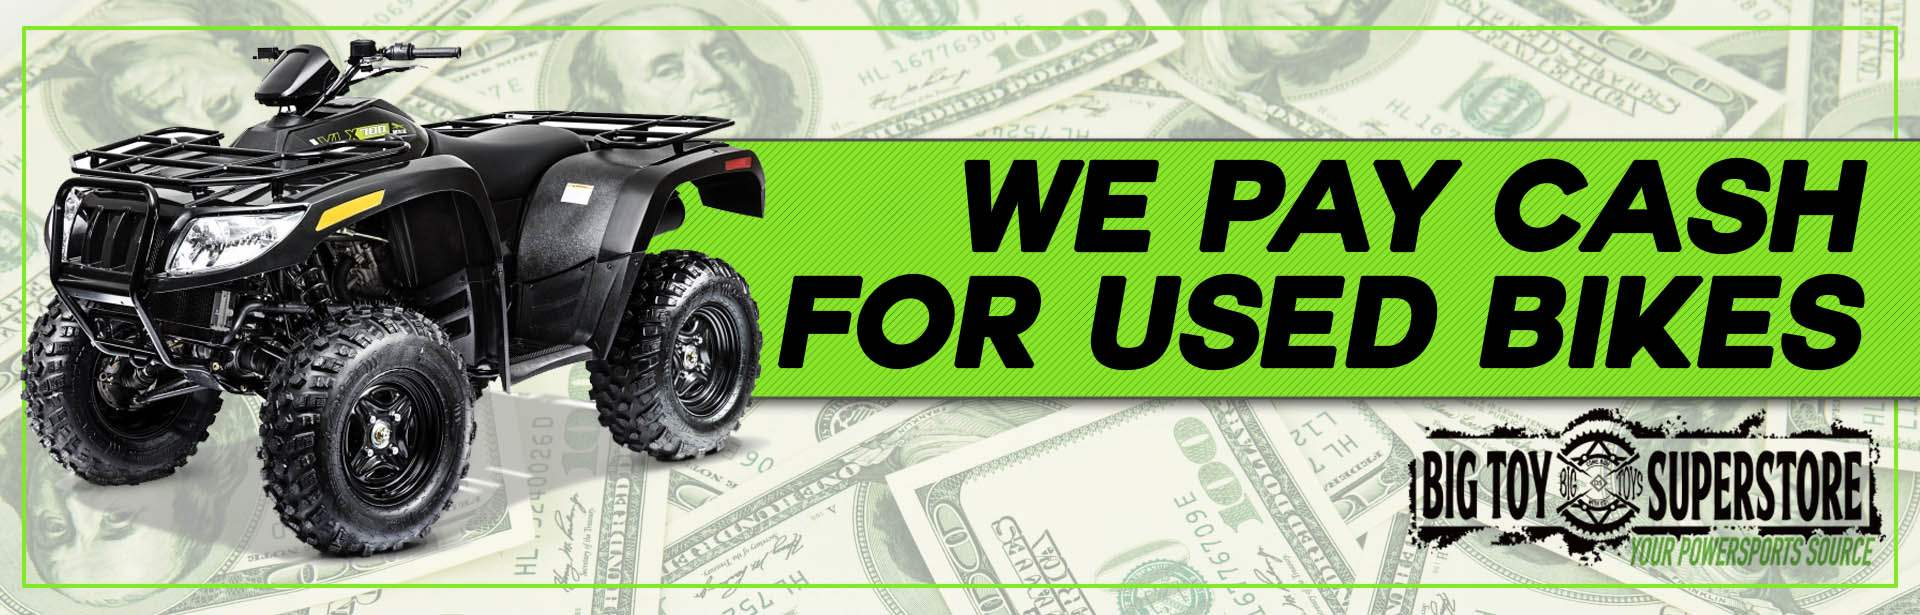 We pay cash for used bikes!